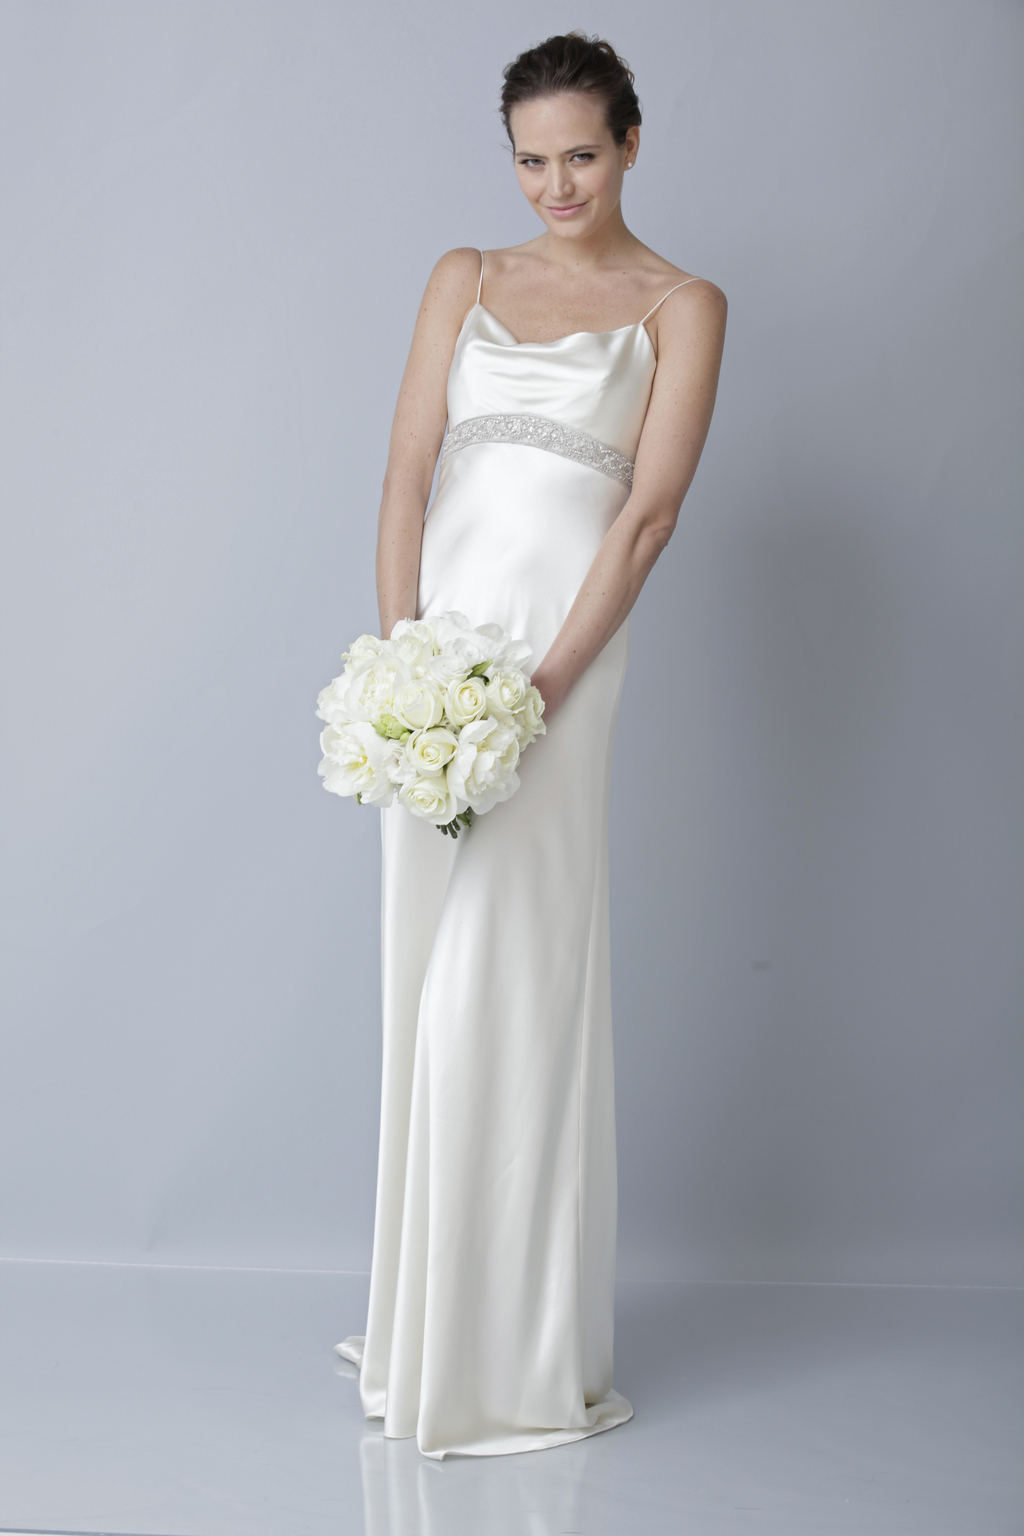 Theia-white-collection-wedding-dress-spring-2013-bridal-gown-890011.full